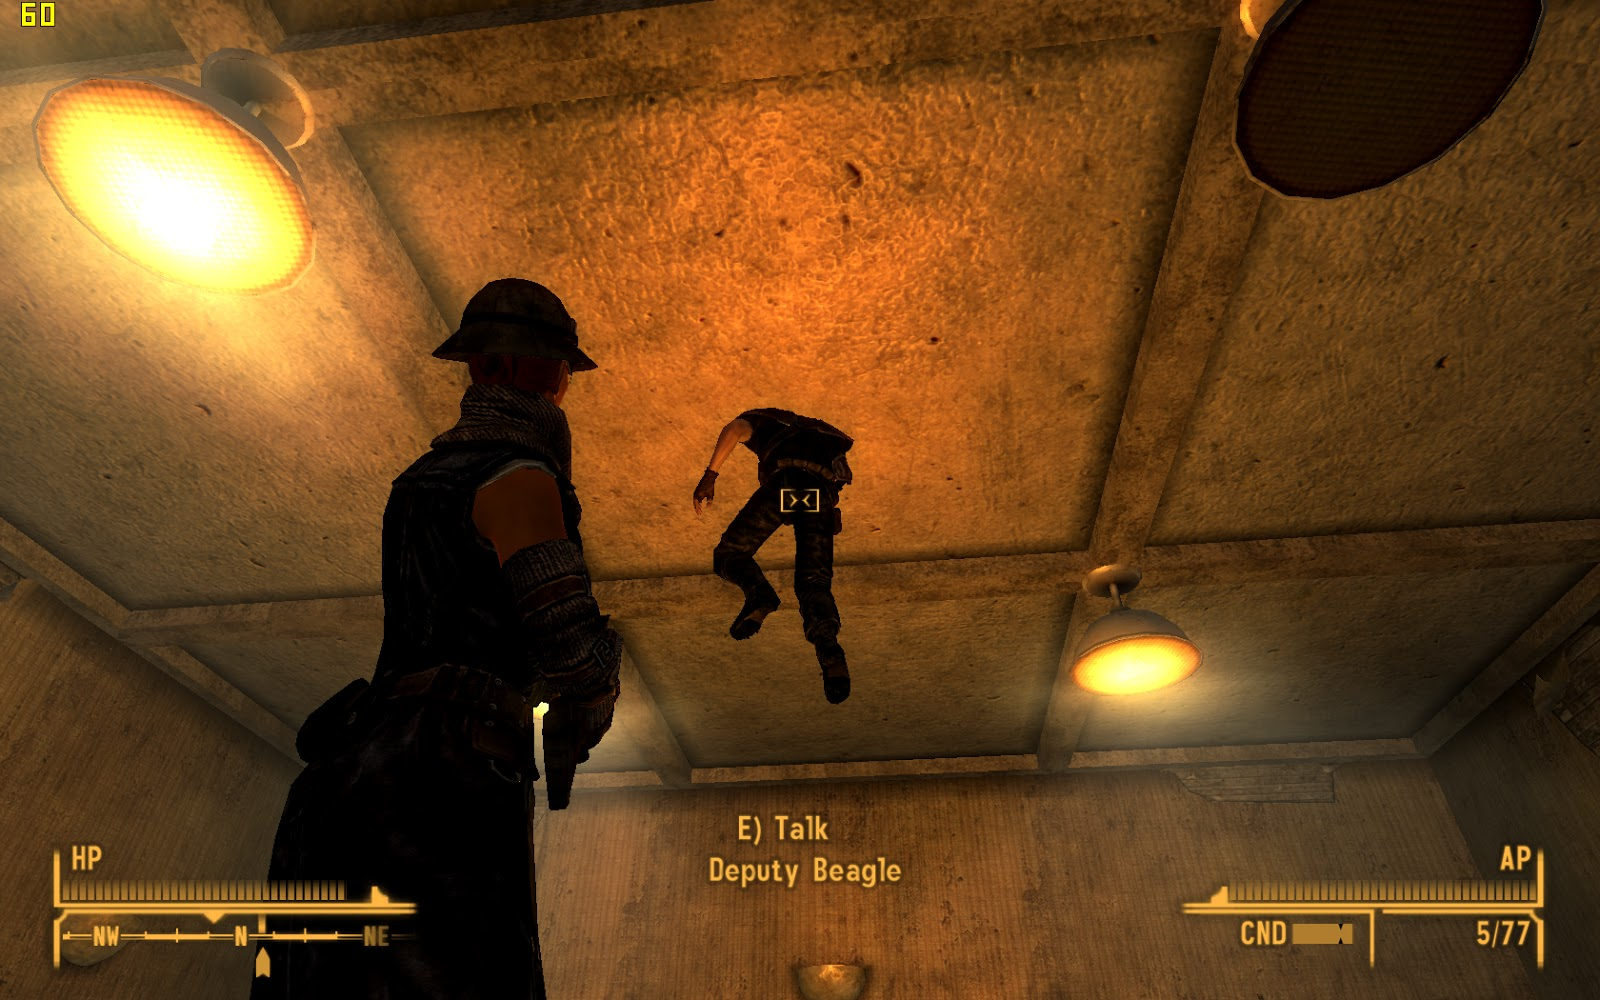 Game a day ish return of the glitch fallout new vegas a travelog in pictures of my adventures in new vegas most of the glitches happened early on but were funny nonetheless voltagebd Choice Image